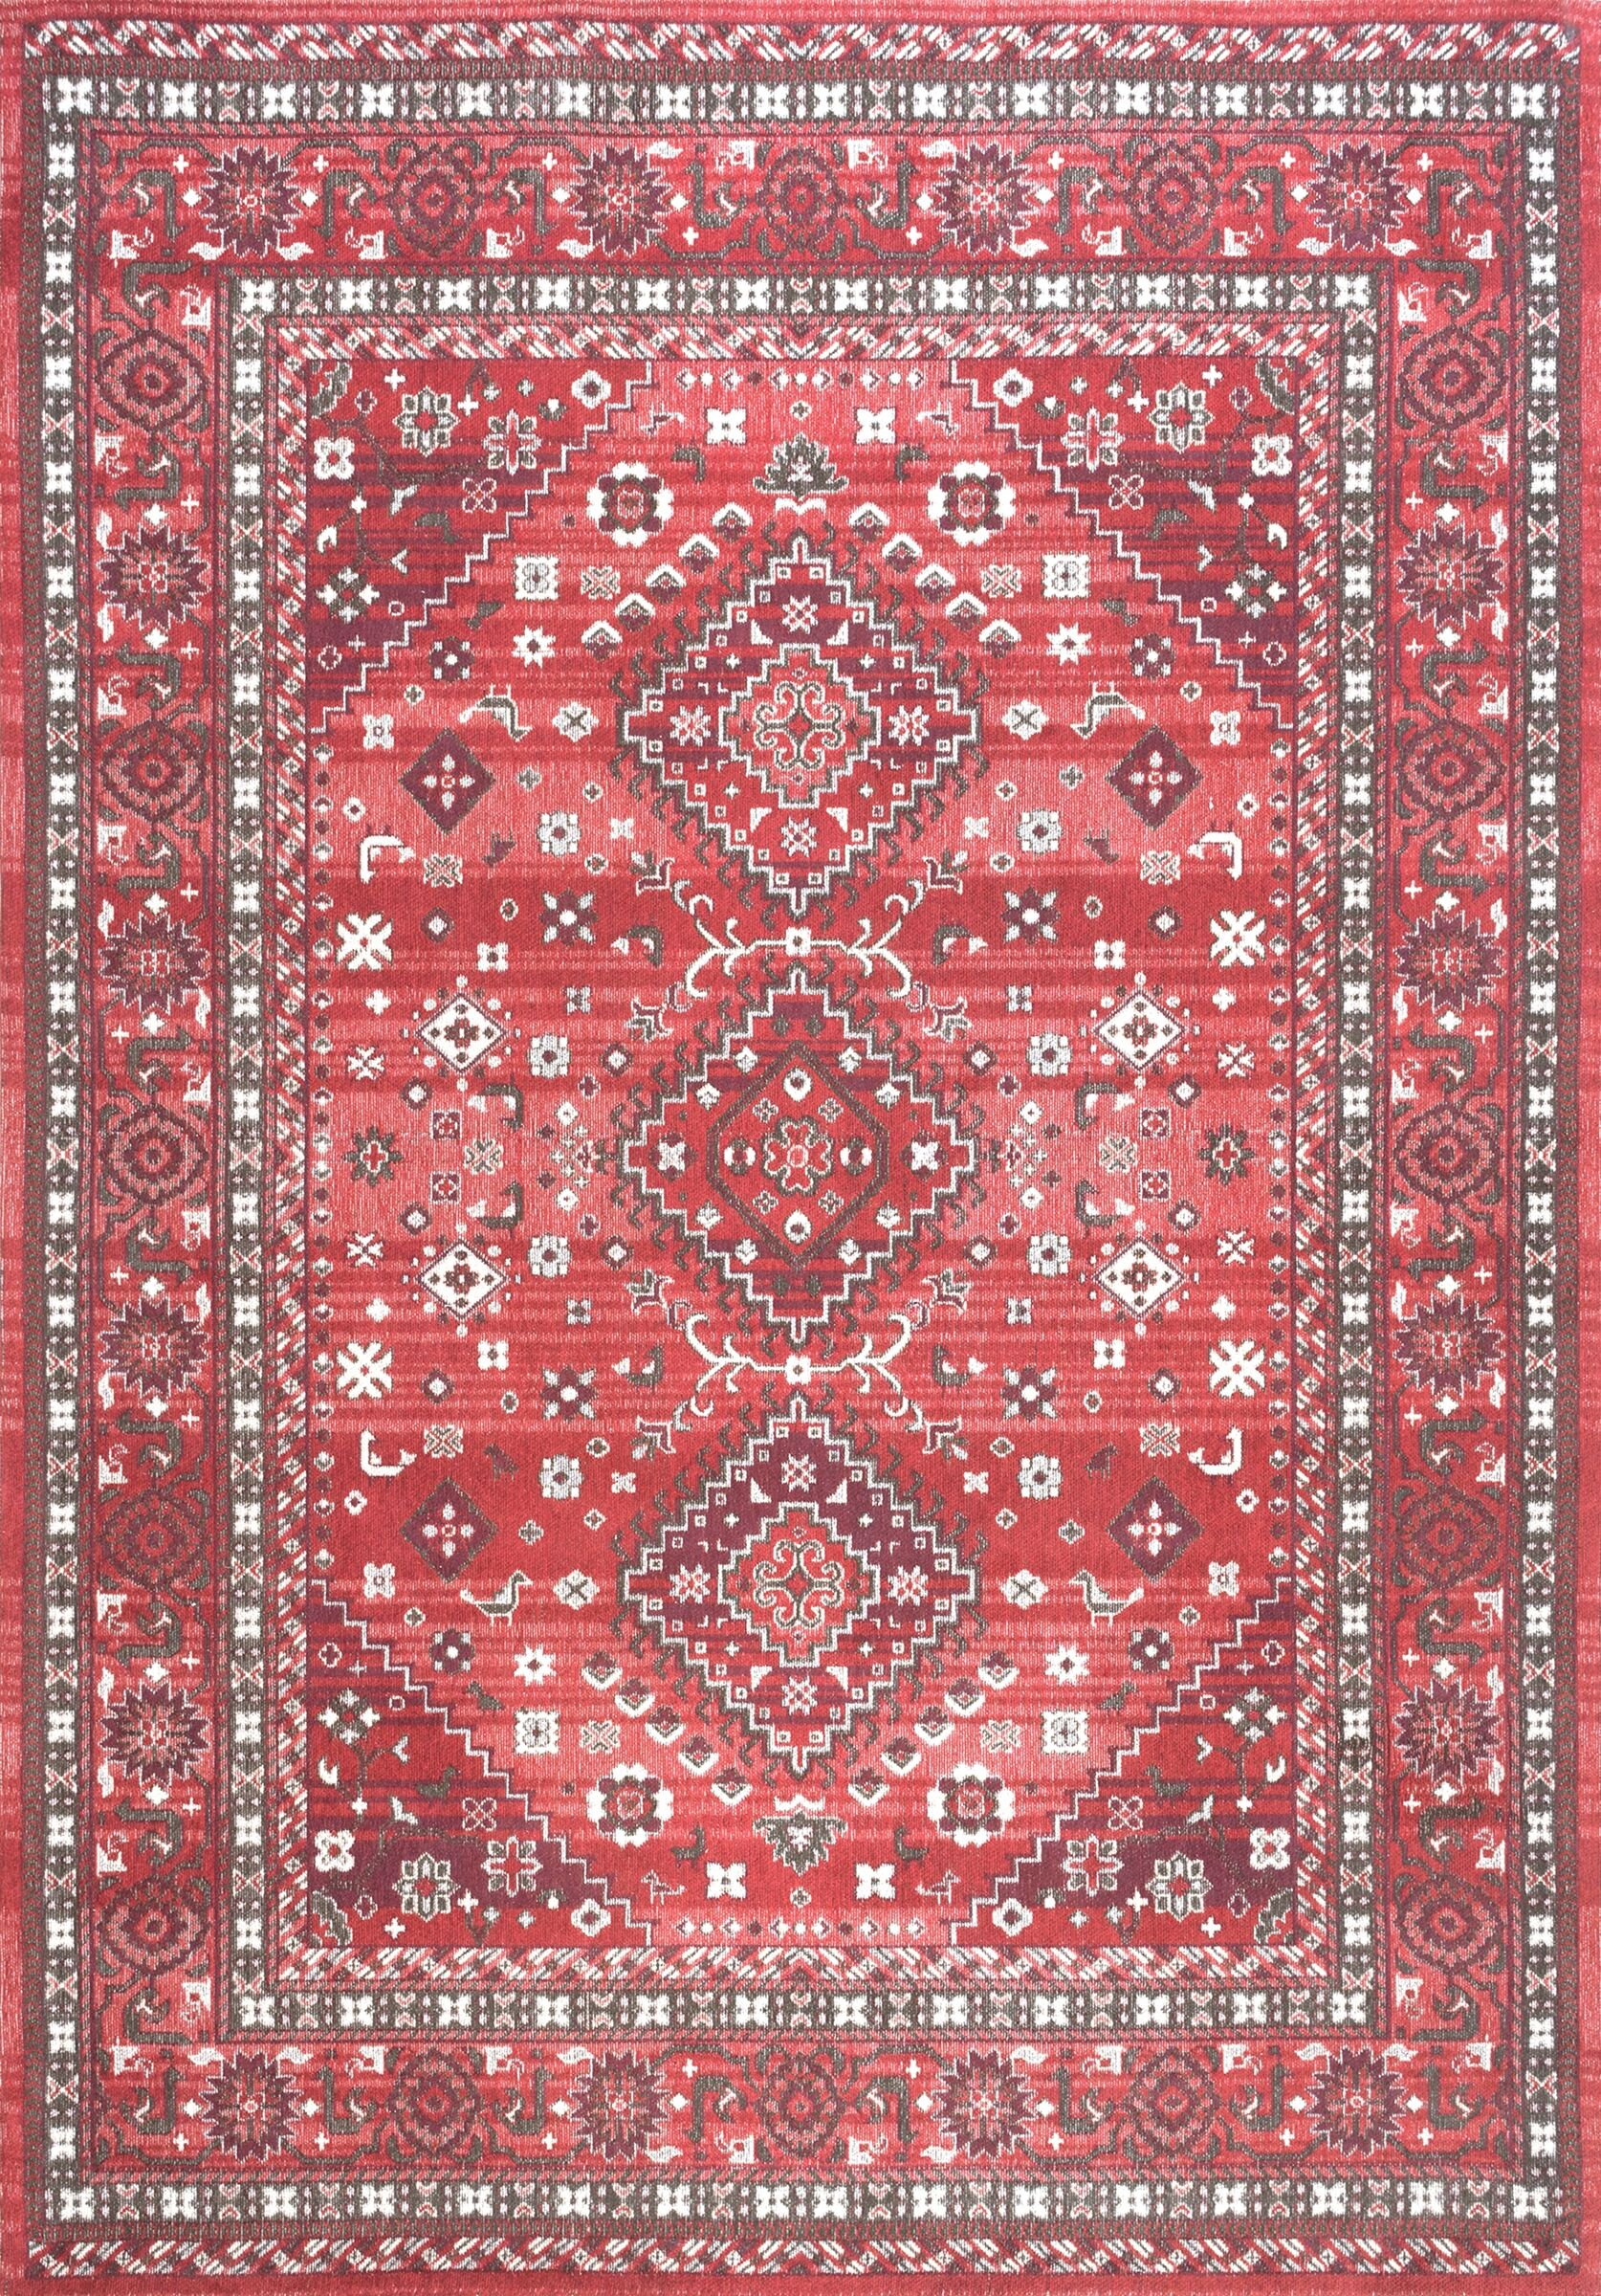 Venice Cotton Red Area Rug Rug Size: Rectangle 7' 6